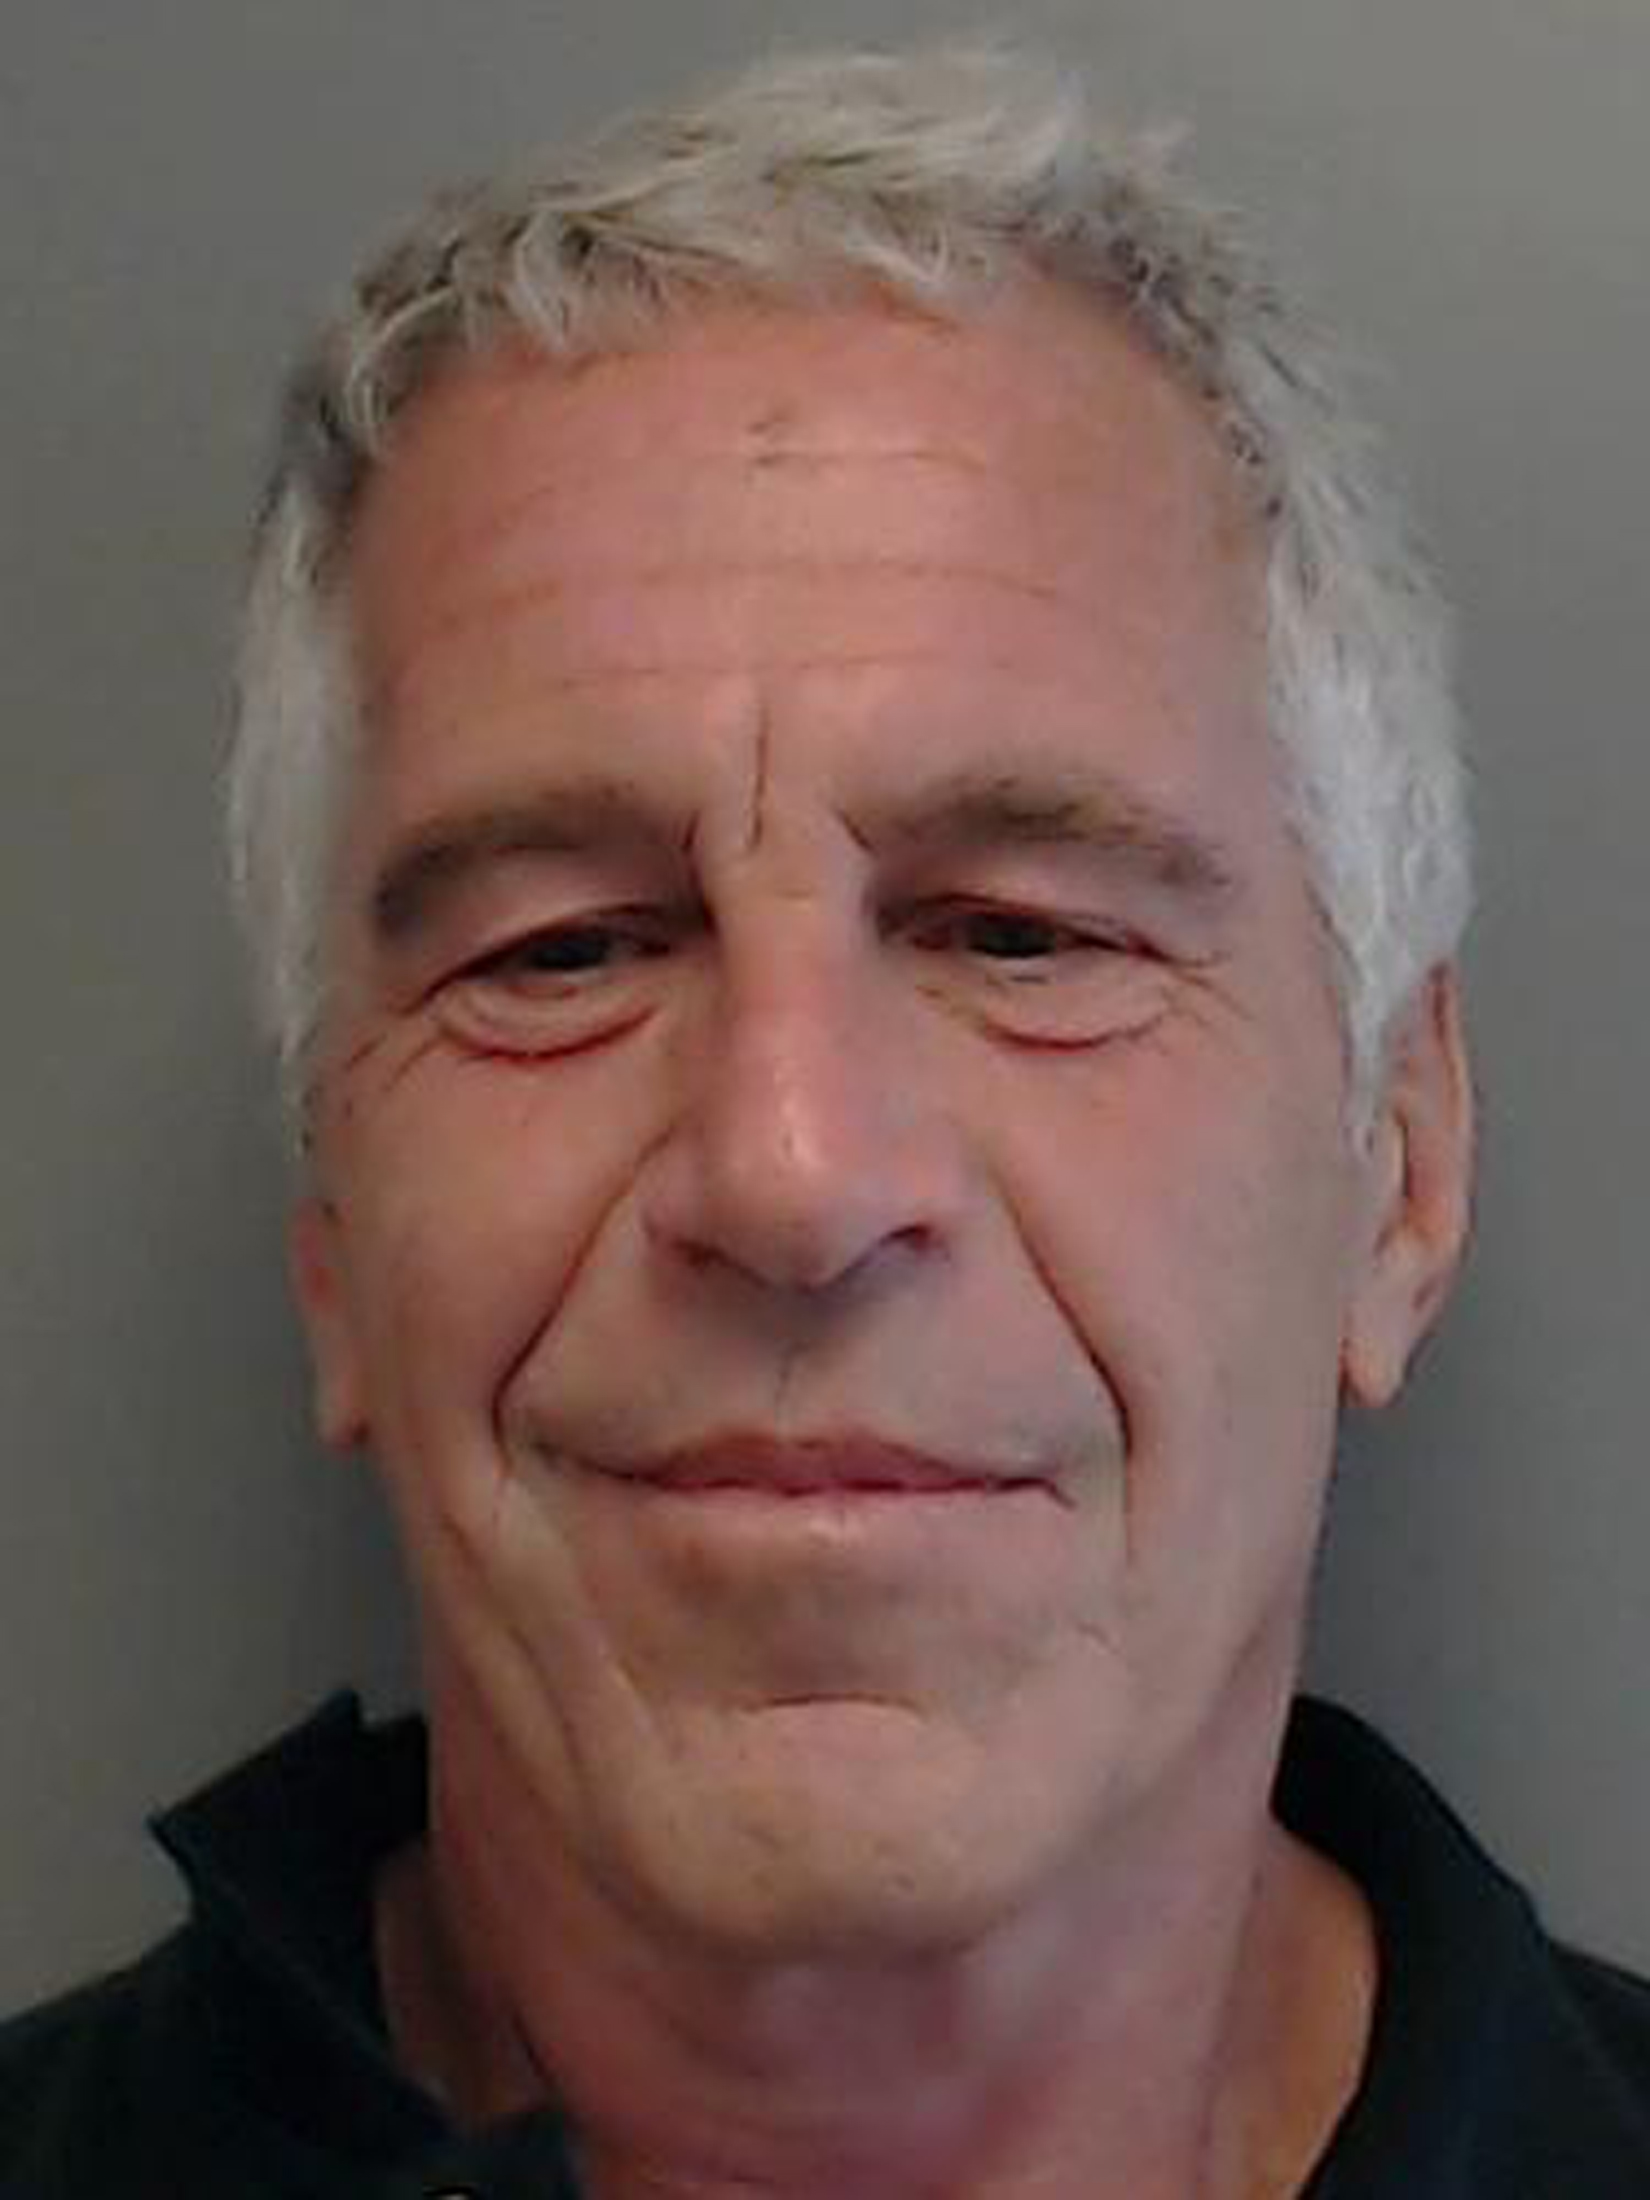 Jeffrey Epstein is shown in this undated Florida Department of Law Enforcement photo. REUTERS/Florida Department of Law Enforcement/Handout via Reuters